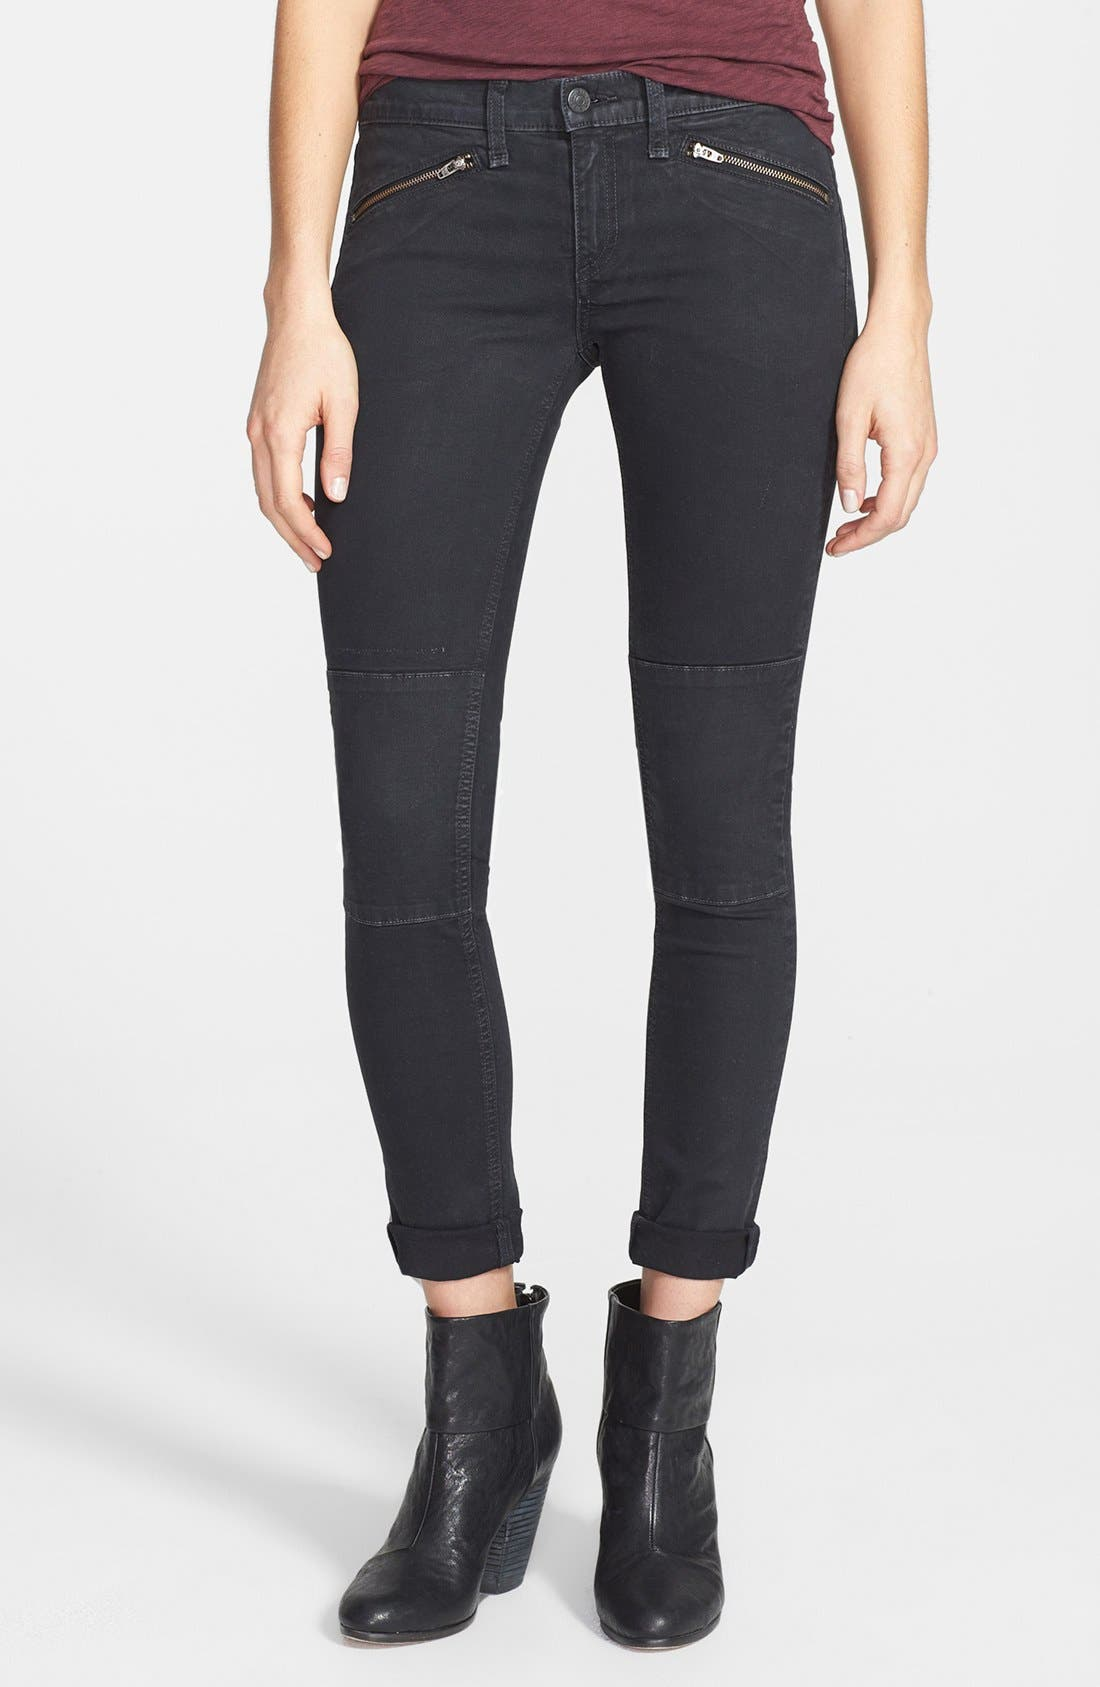 Alternate Image 1 Selected - rag & bone/JEAN 'Ridley' Moto Skinny Jeans (Wax Black)